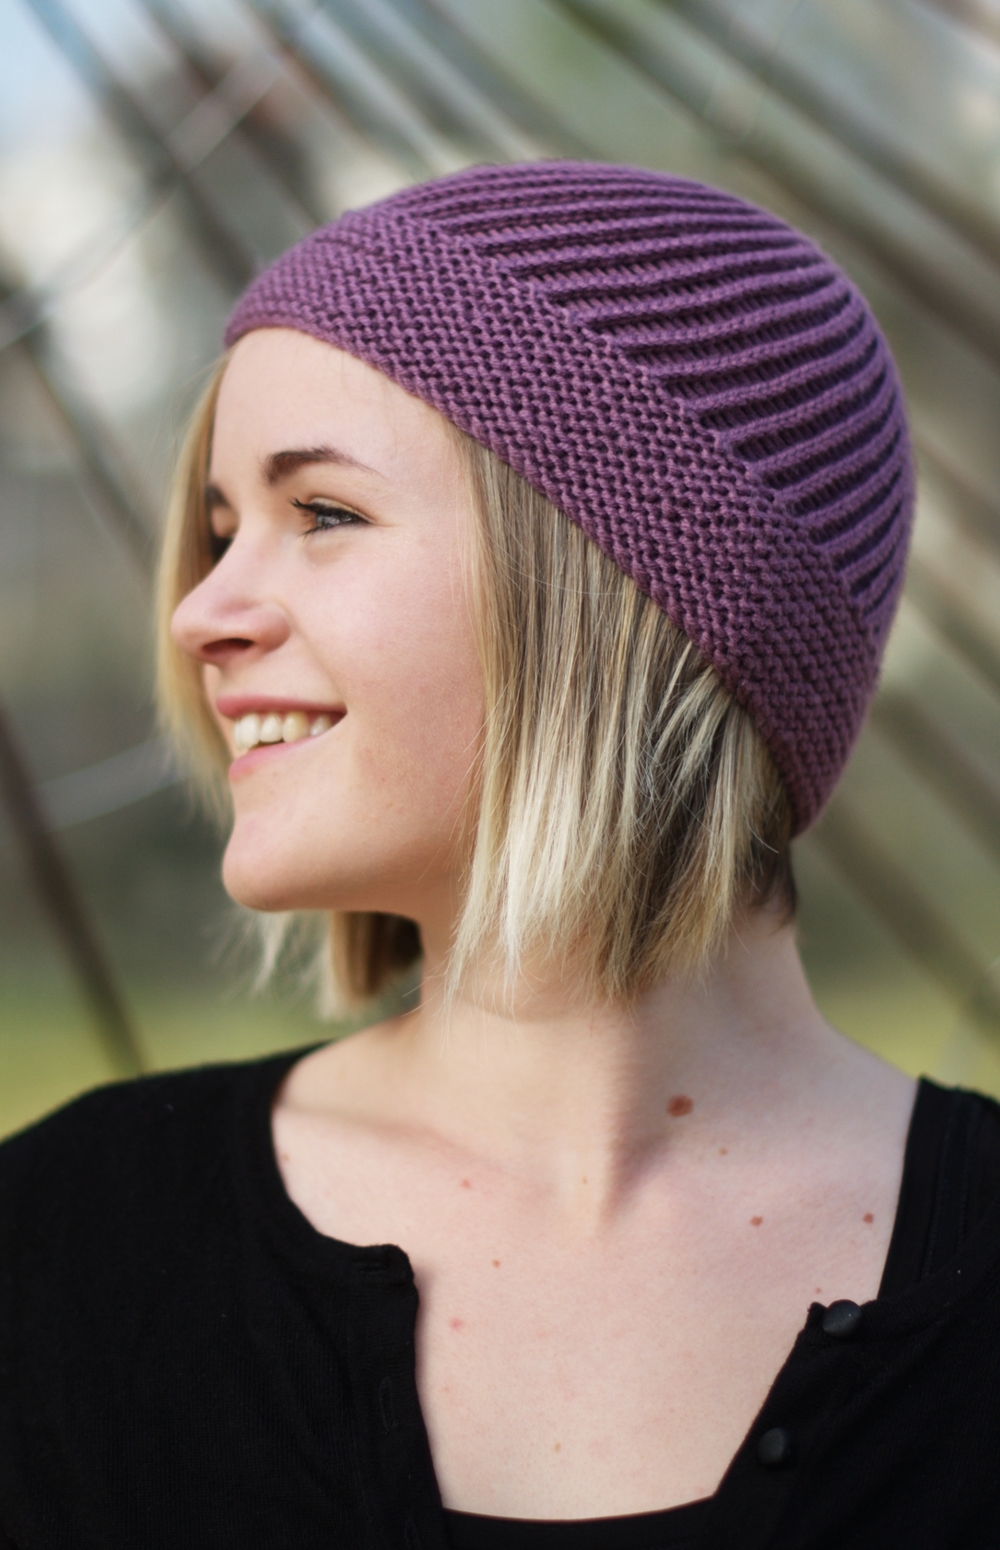 Kilkanna bias knit Hat pattern